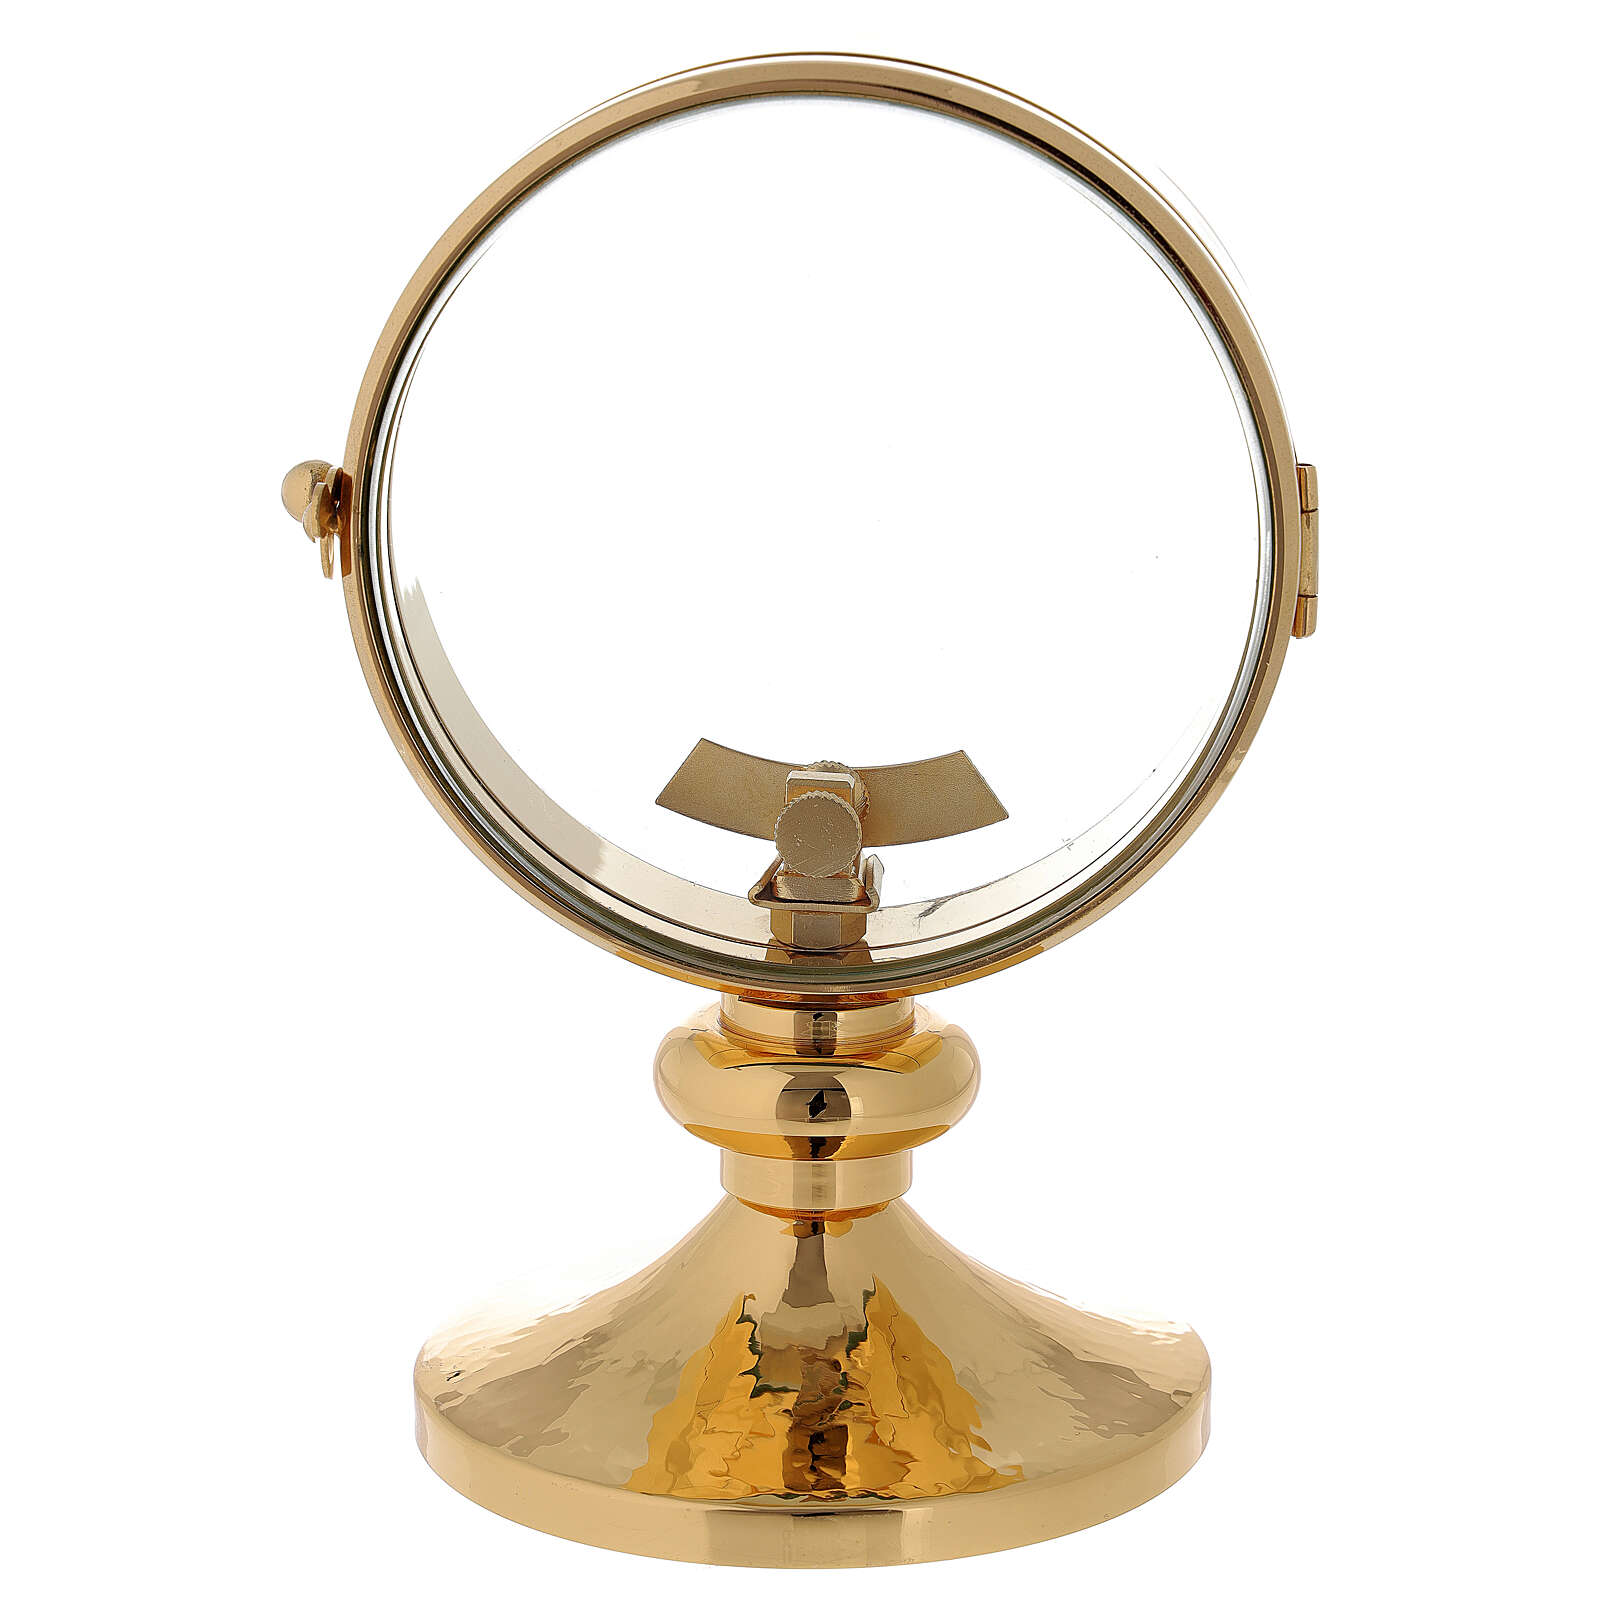 STOCK Smooth monstrance gold plated brass 4 in diameter 4